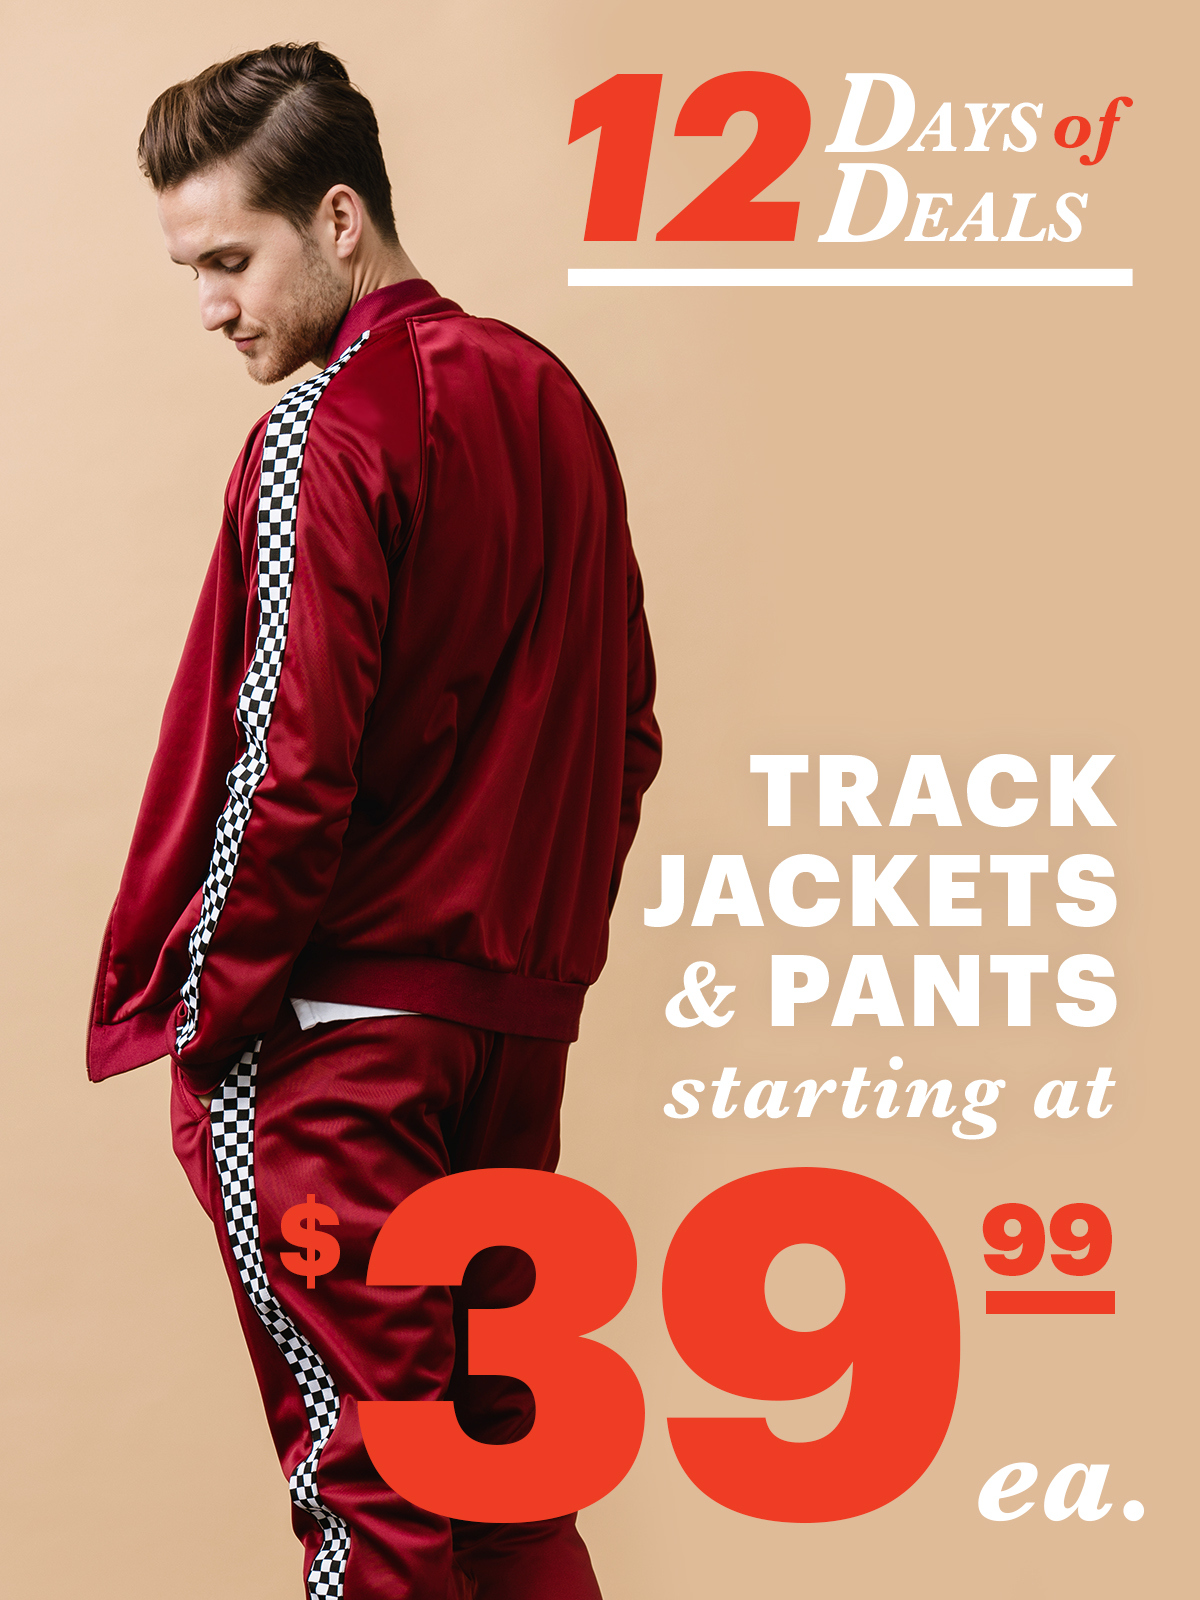 12 Days Of Deals: Day 9 Track Jackets and Pants Starting at $39.99